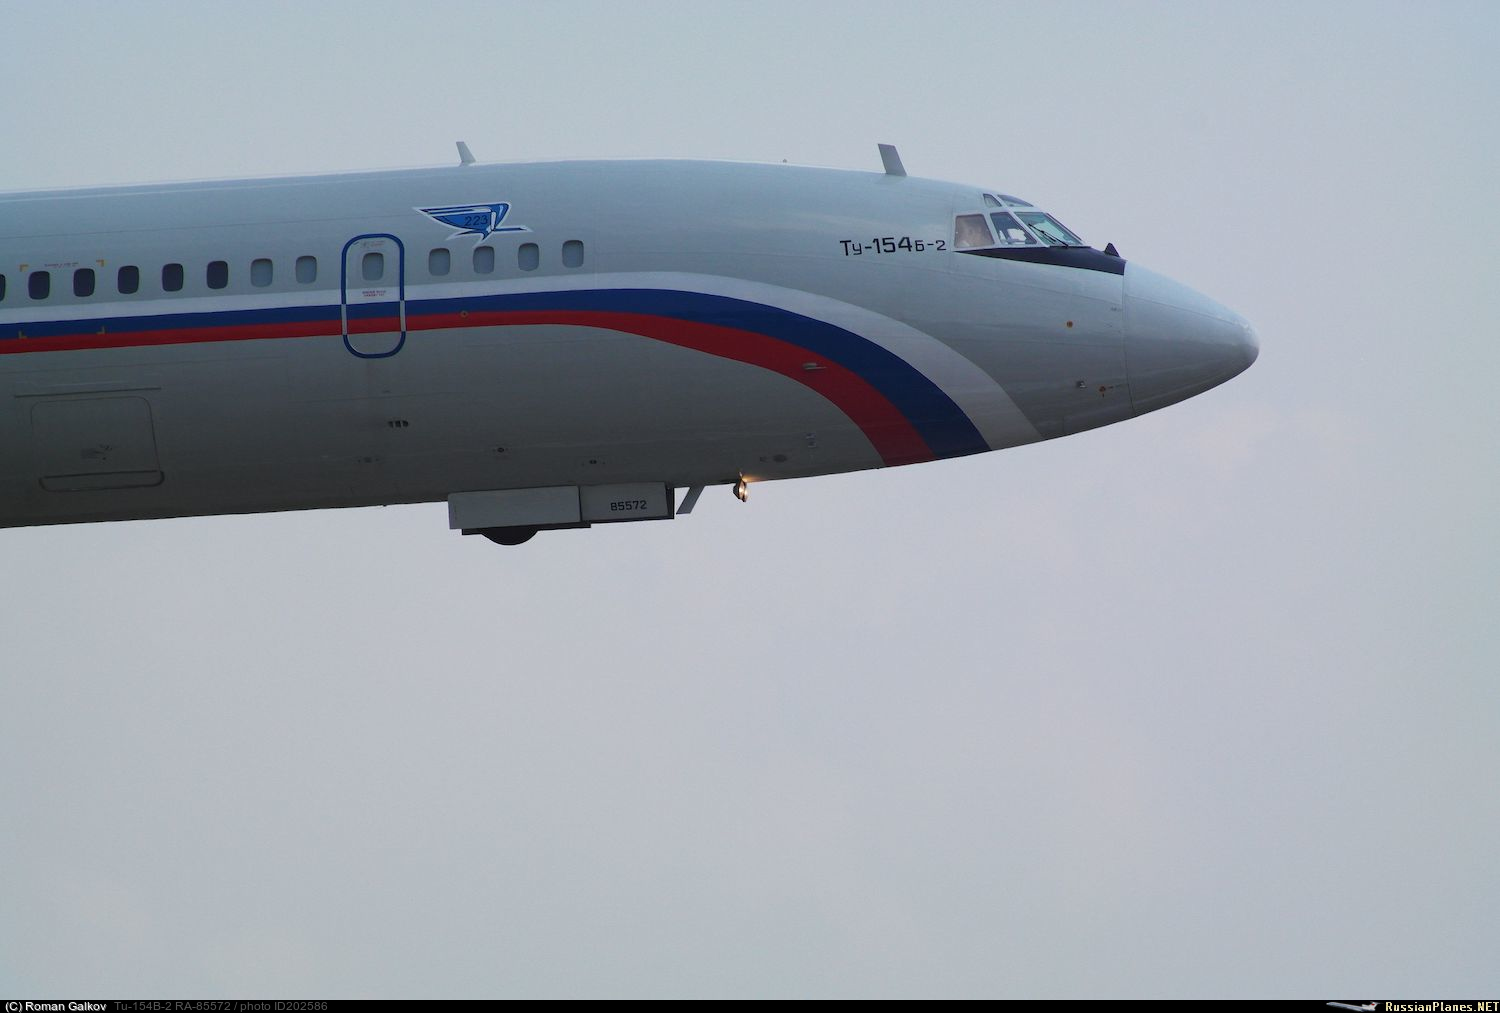 http://russianplanes.net/images/to203000/202586.jpg